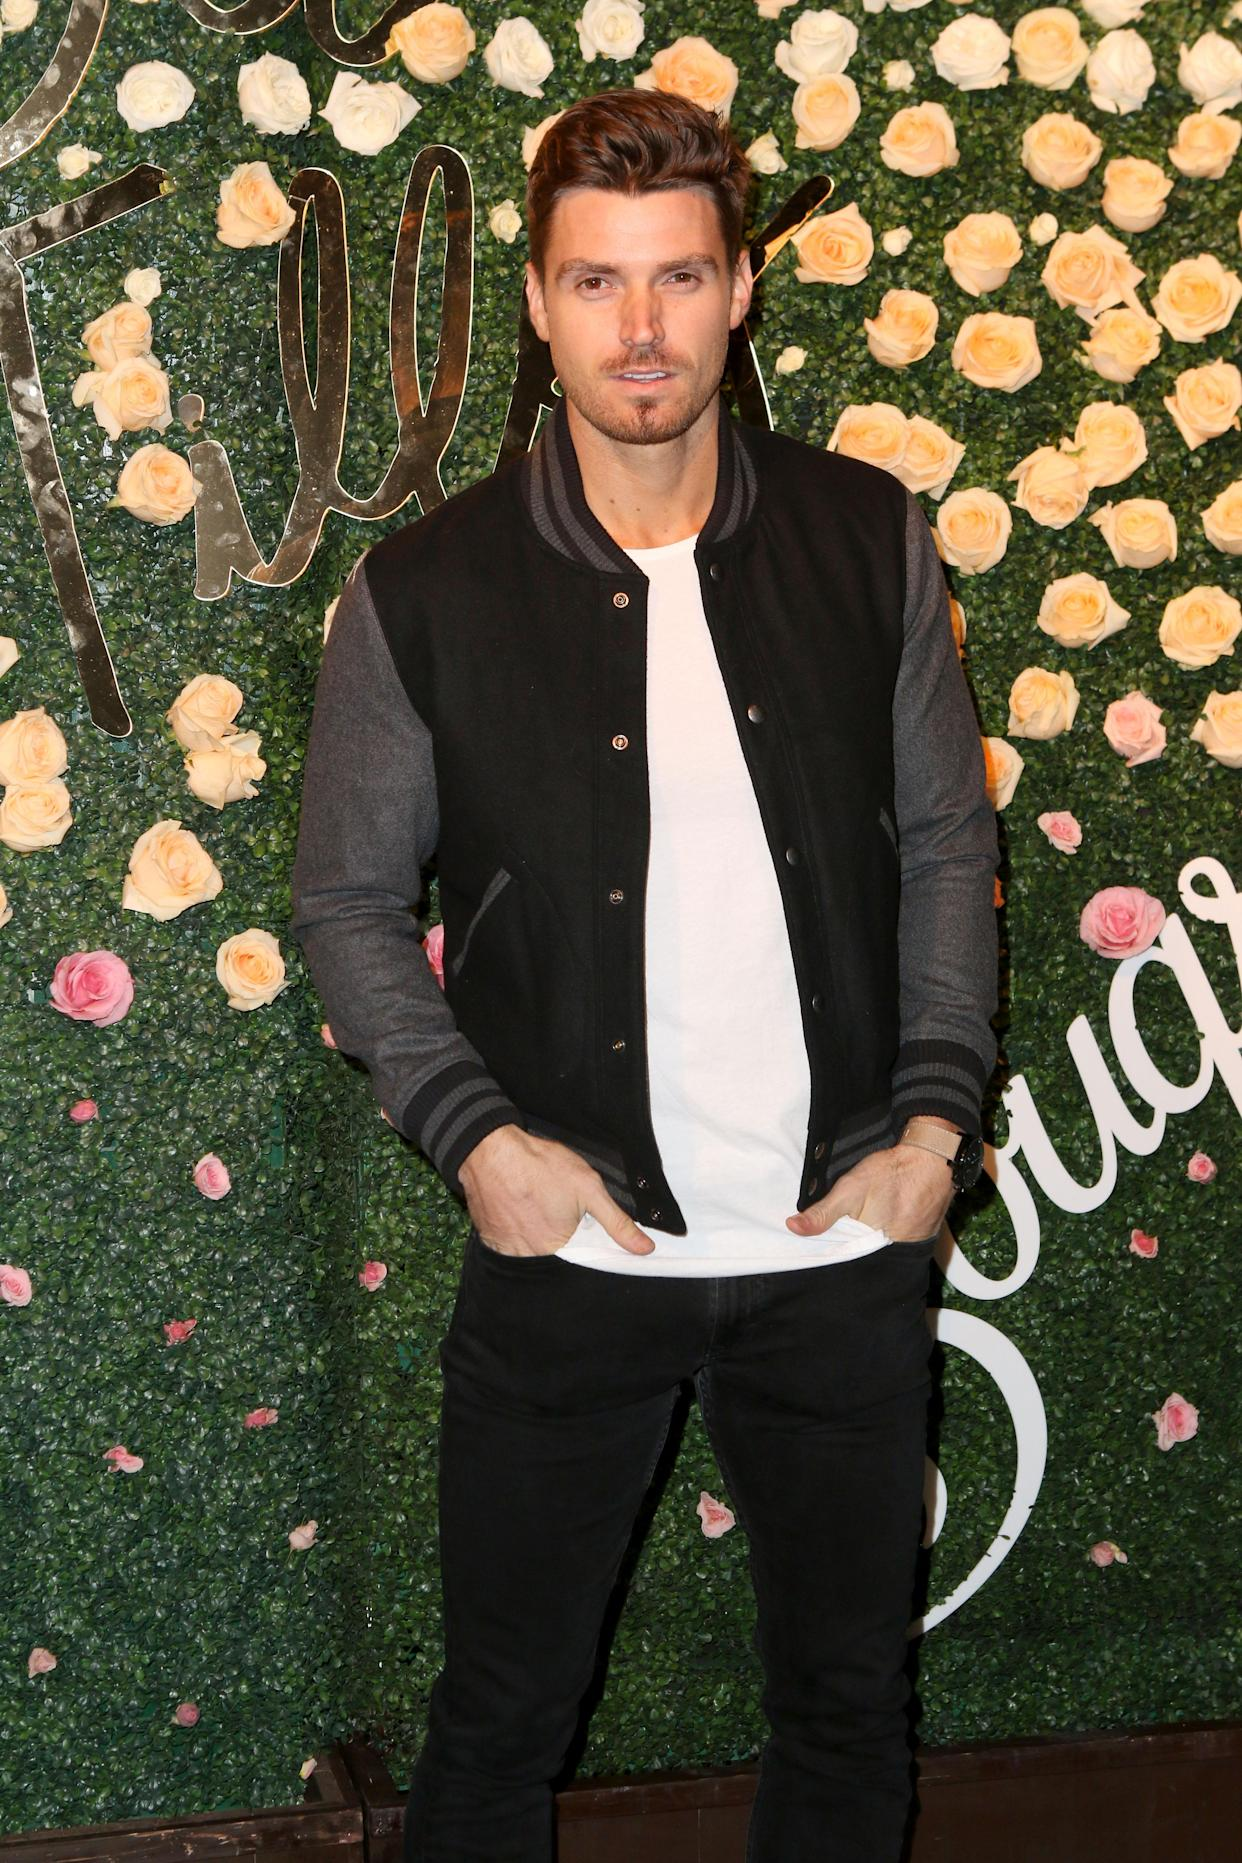 Luke Pell has been criticized for his support of Supreme Court nominee Brett Kavanaugh. (Photo: Tasia Wells/WireImage)